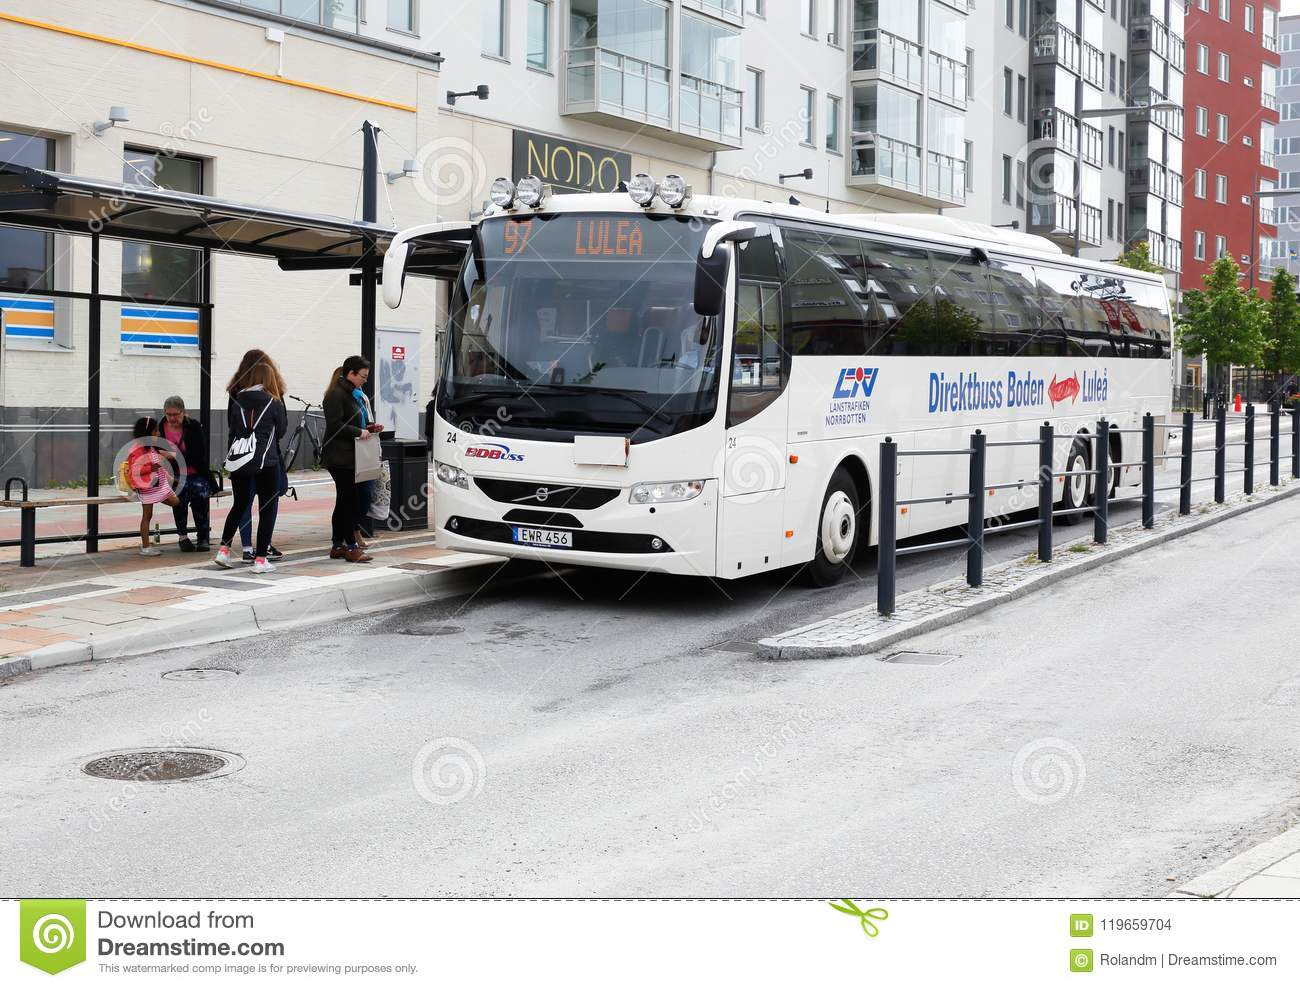 Express bus service in Boden